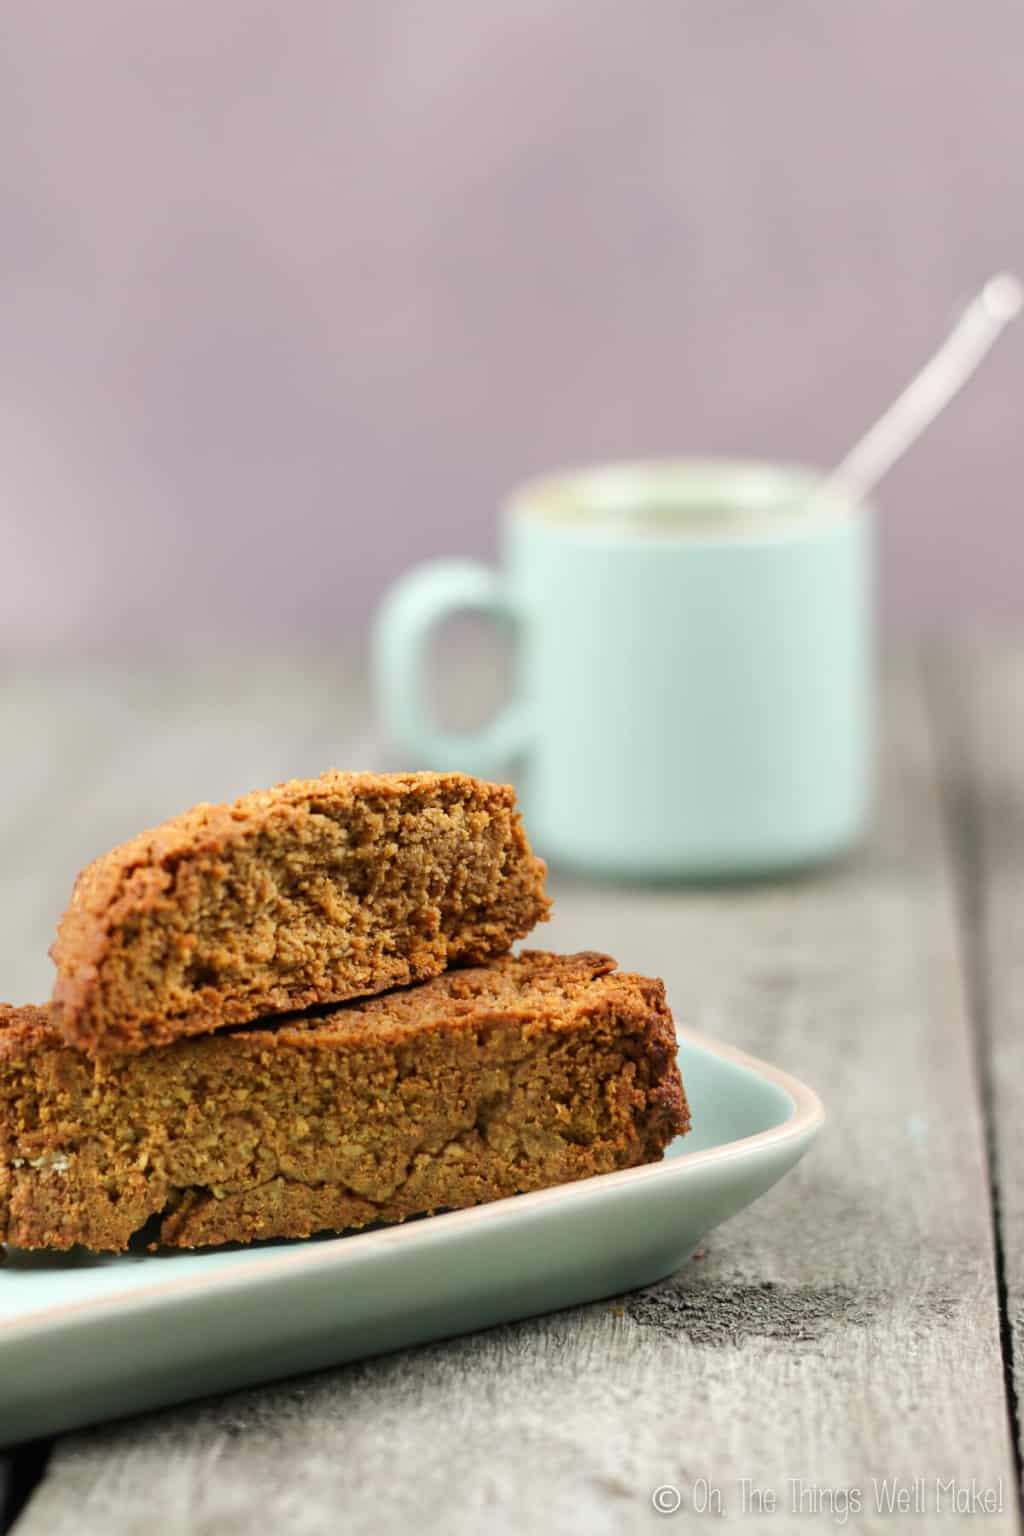 My original pumpkin spice biscotti on a plate in front of a light turquoise cup of coffee.